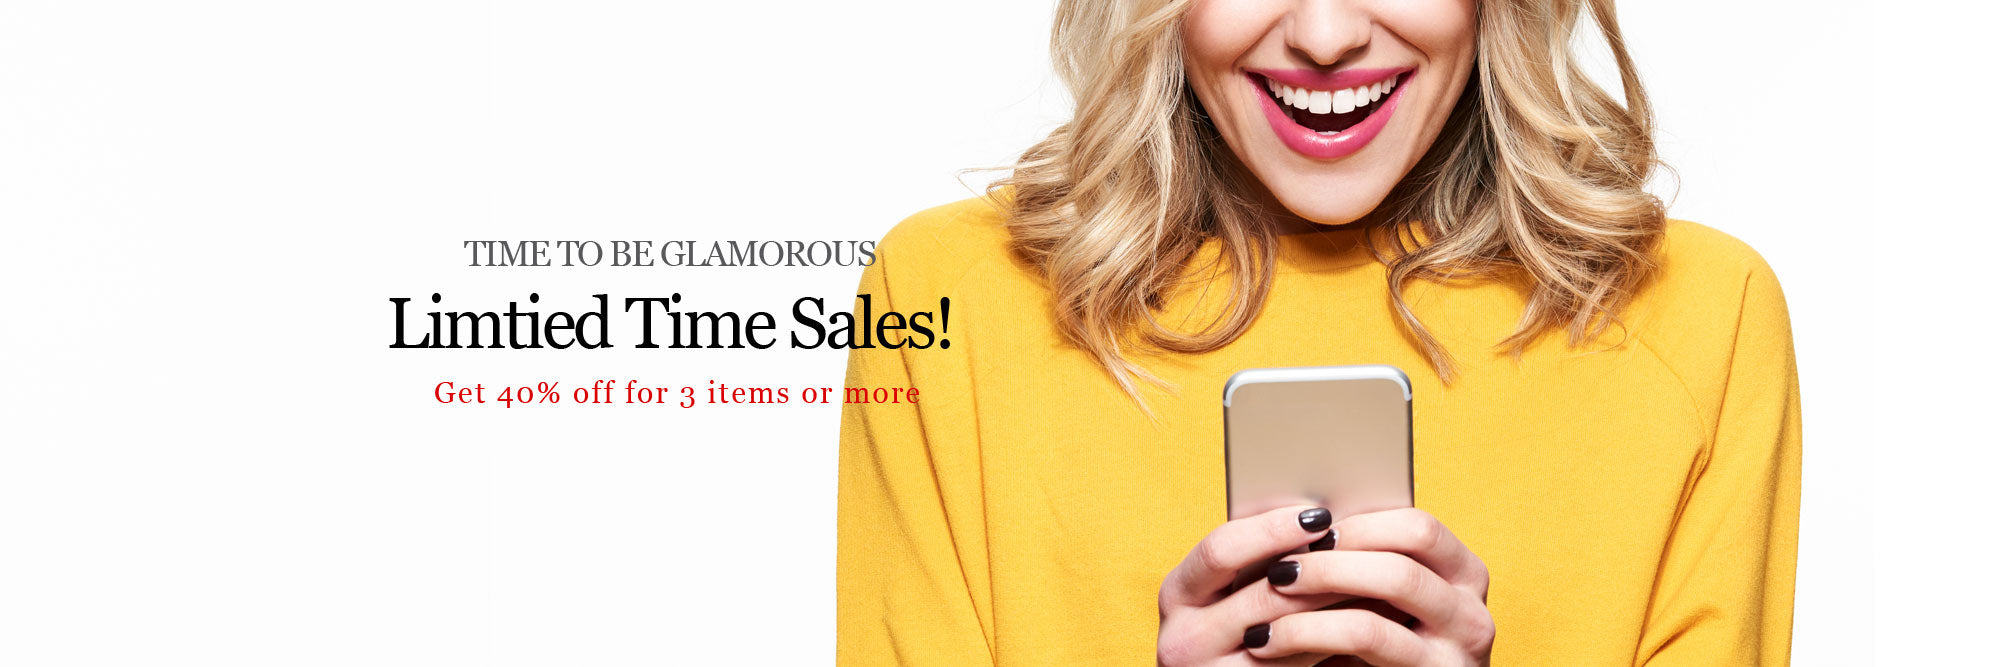 Glamorousky Limited Time Sales